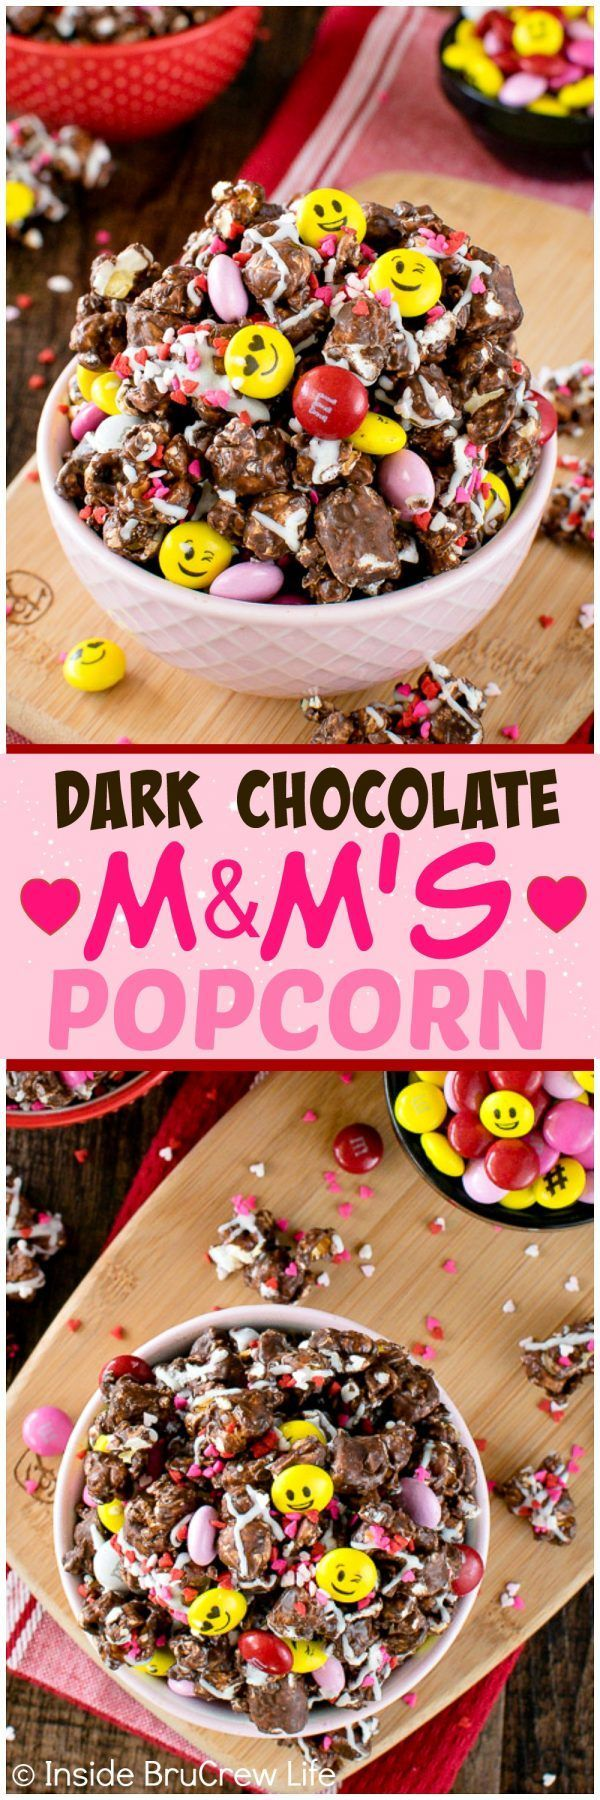 Dark Chocolate M&M's Popcorn - chocolate coated popcorn loaded with sprinkles & candies make this the best snack mix. Easy recipe for movie nights or game days!